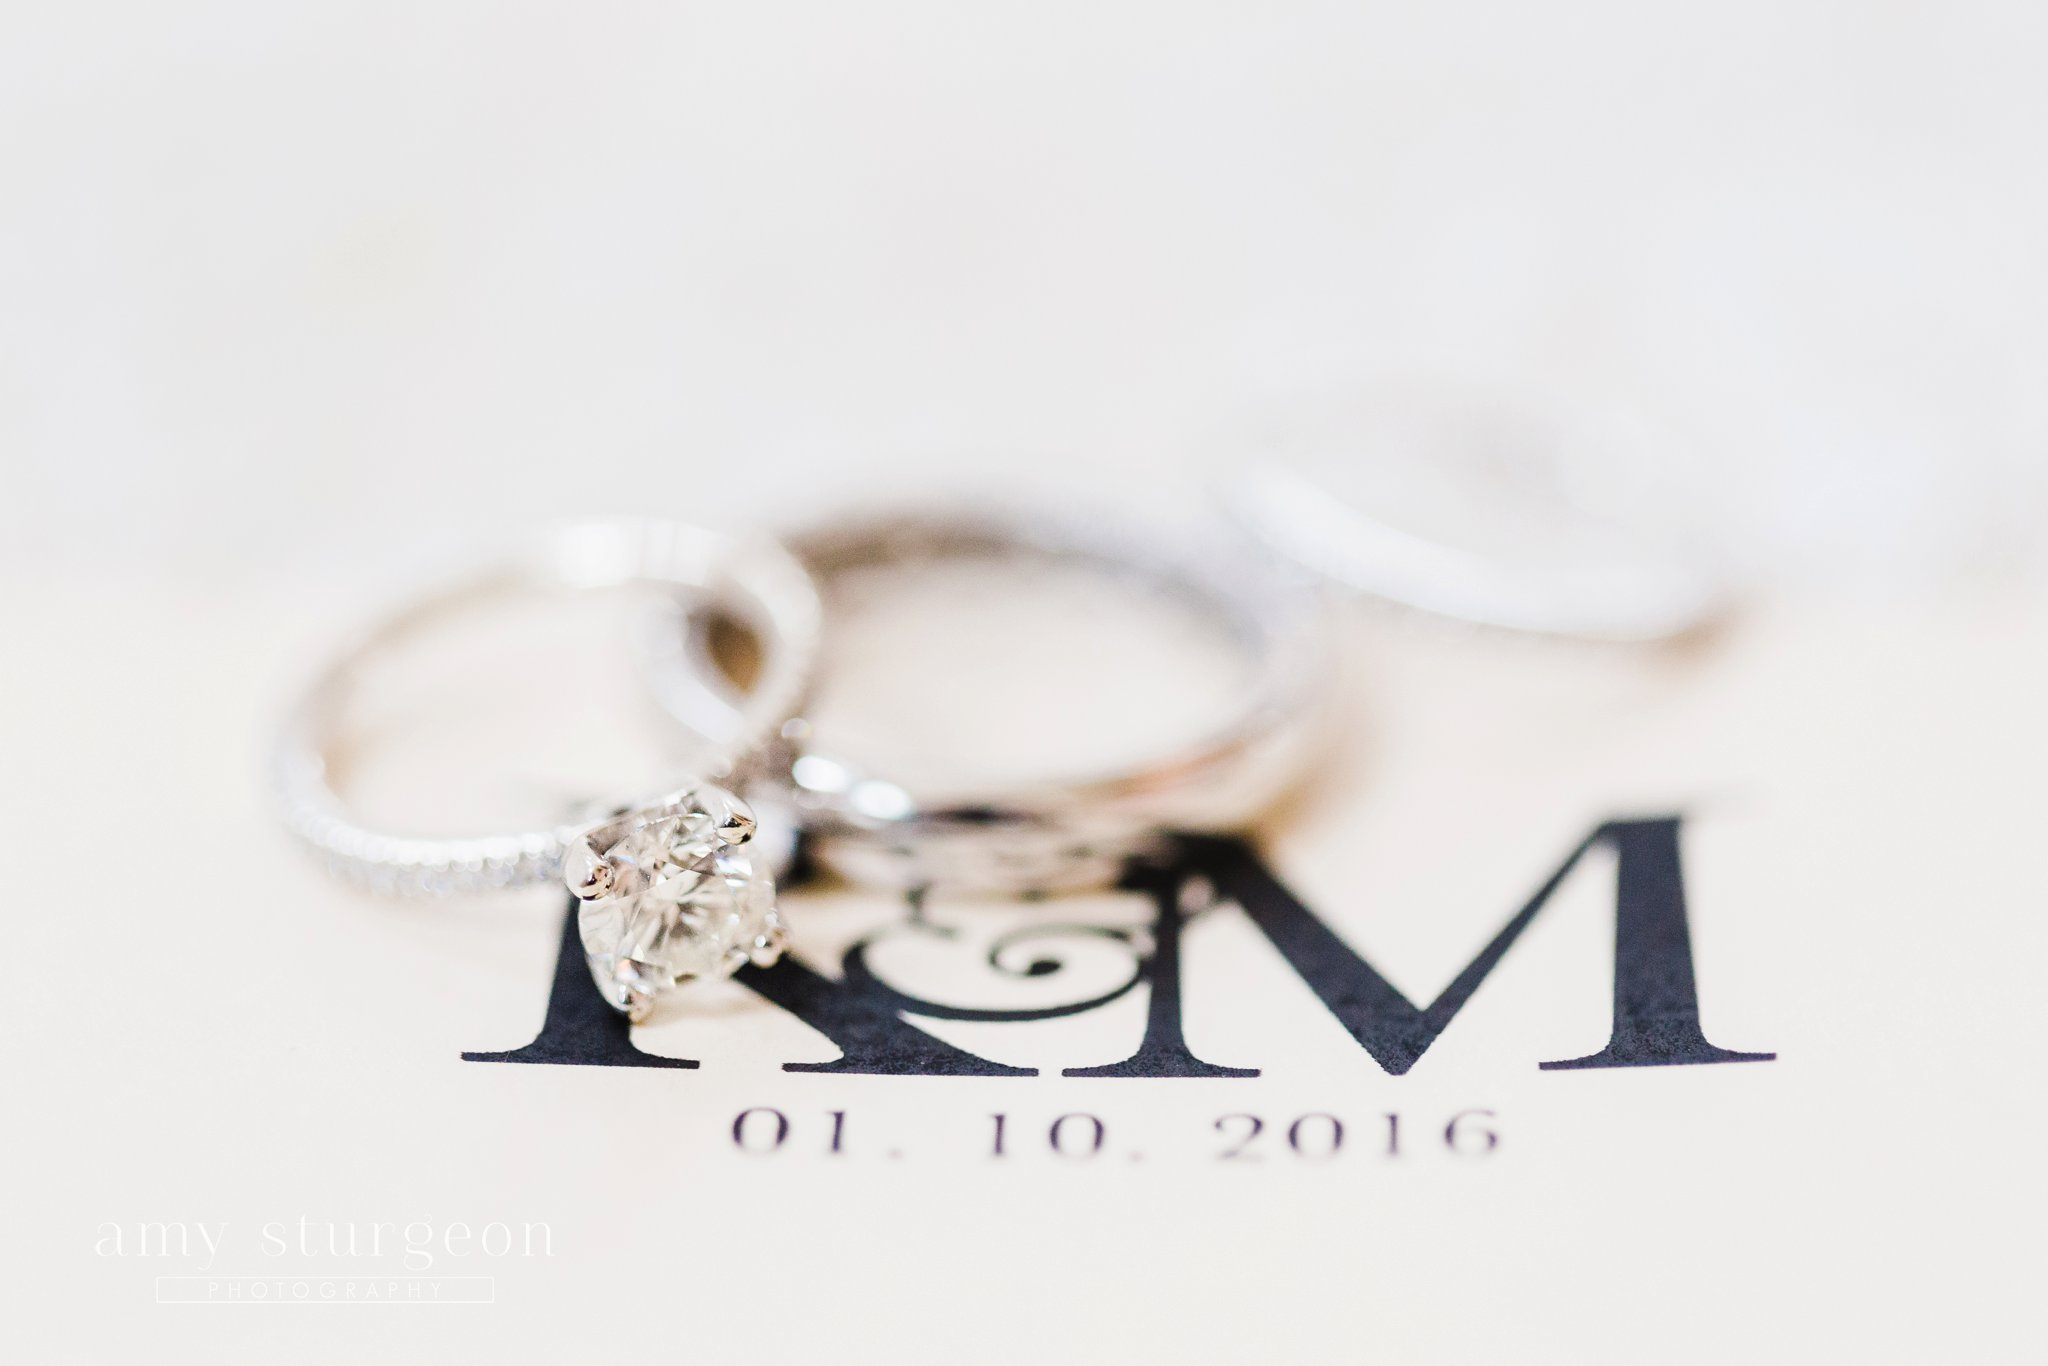 Solitaire diamond ring with monogrammed invitations at the alpaca farm wedding in ottawa